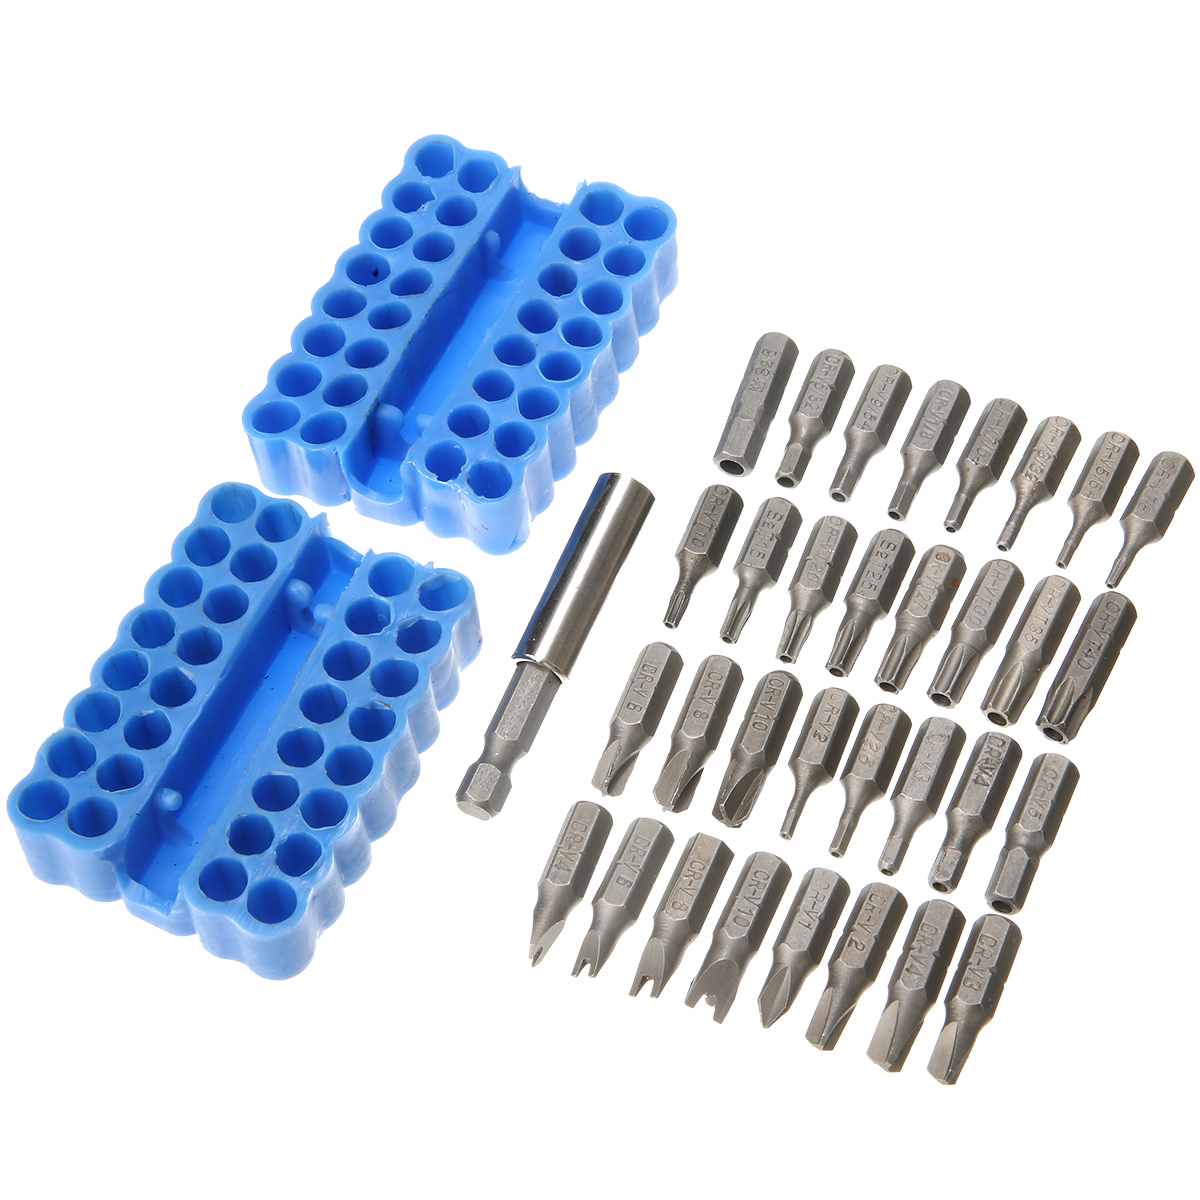 32pcs Security Bit + 1pc Hex Extension Shank Tamper Proof Torx Spanner Screwdriver Star Hex Holder Drill Bit Screw Driver Bits